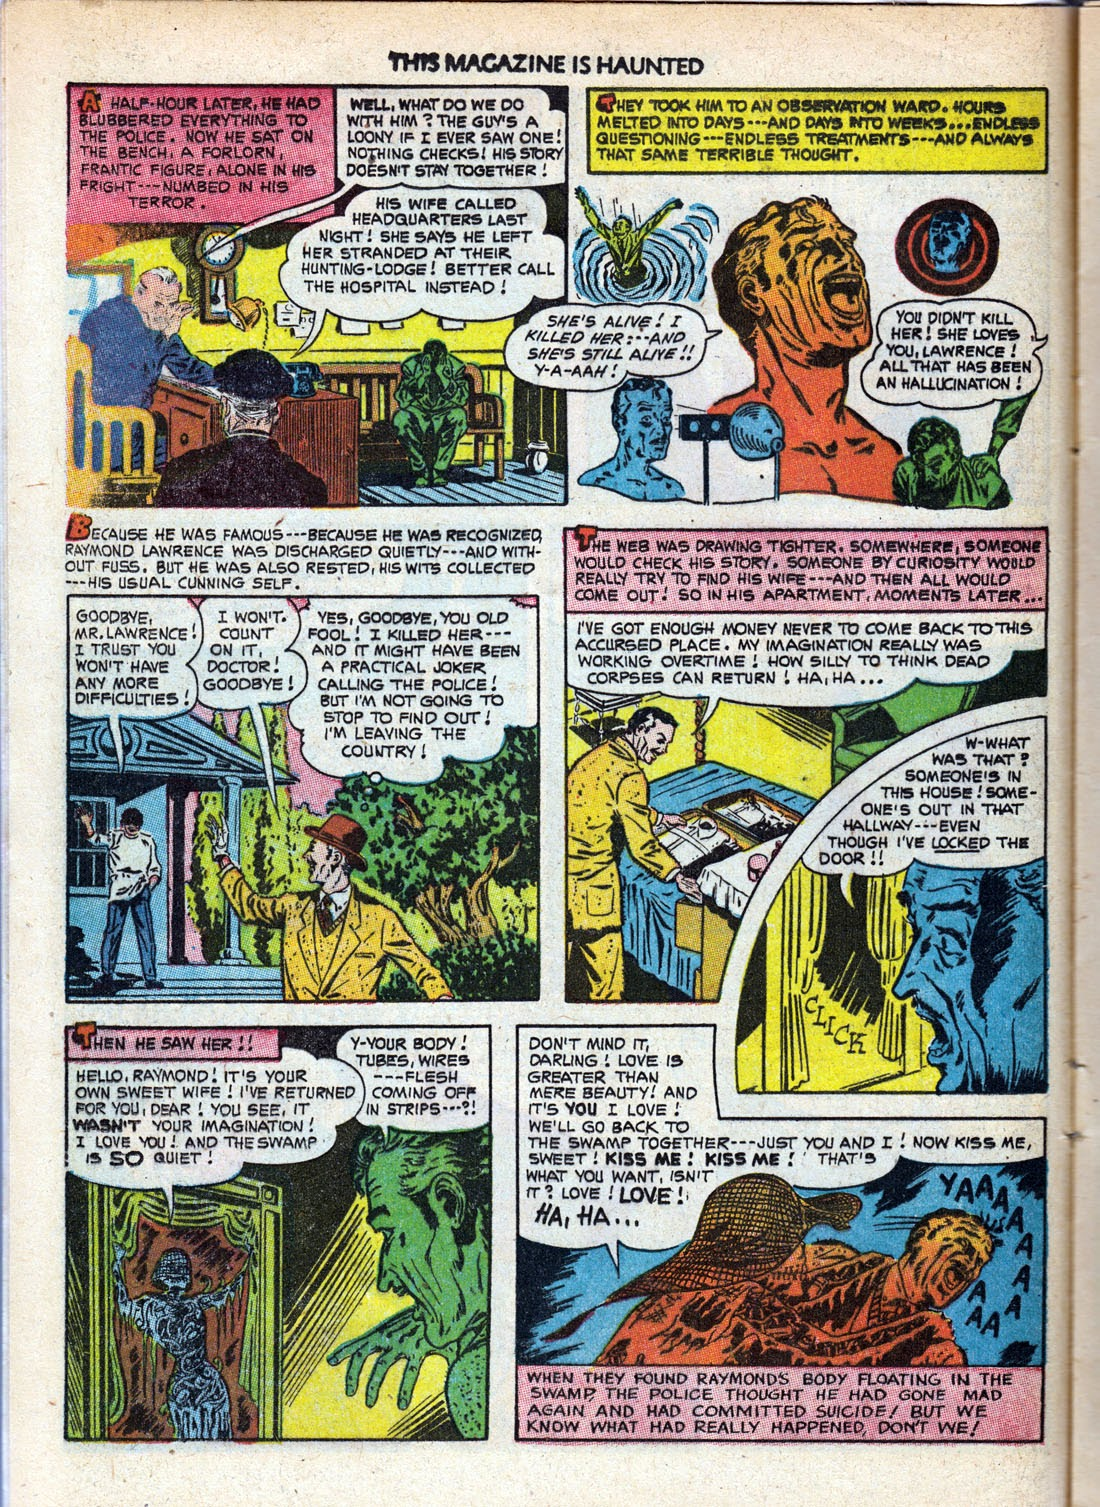 Read online This Magazine Is Haunted comic -  Issue #11 - 12